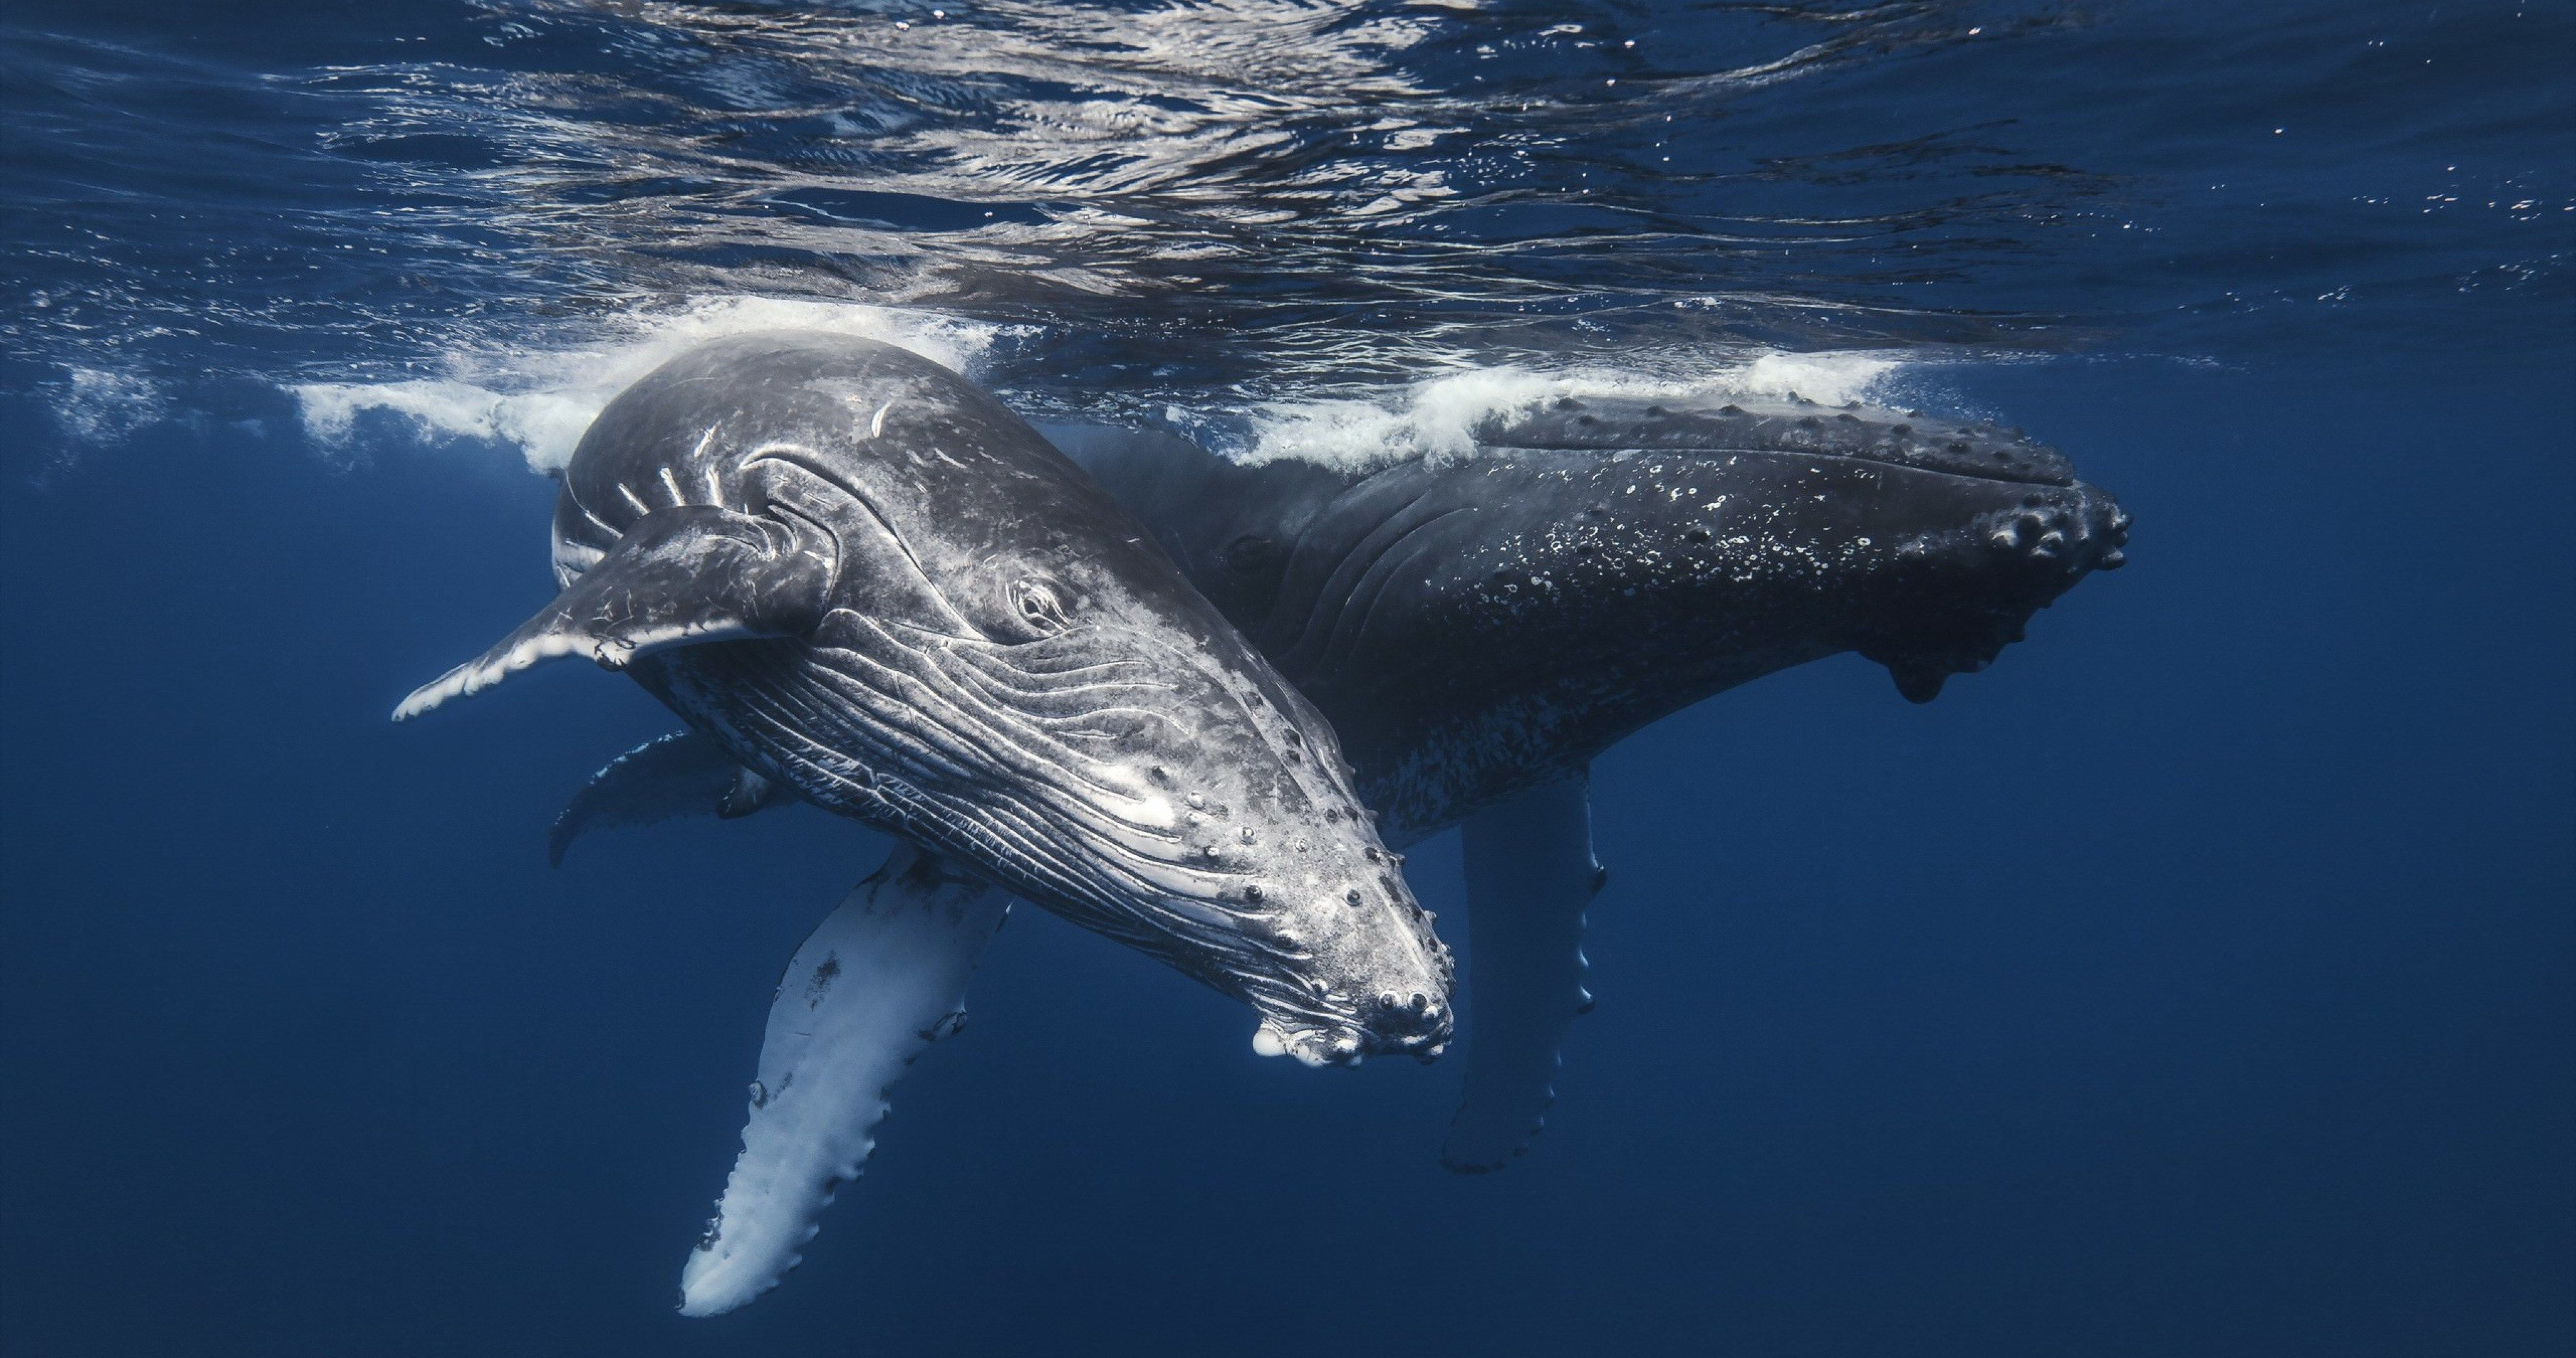 Whales In Sea 4k Ultra Hd Wallpaper Humpback Whale Whale Family Canvas